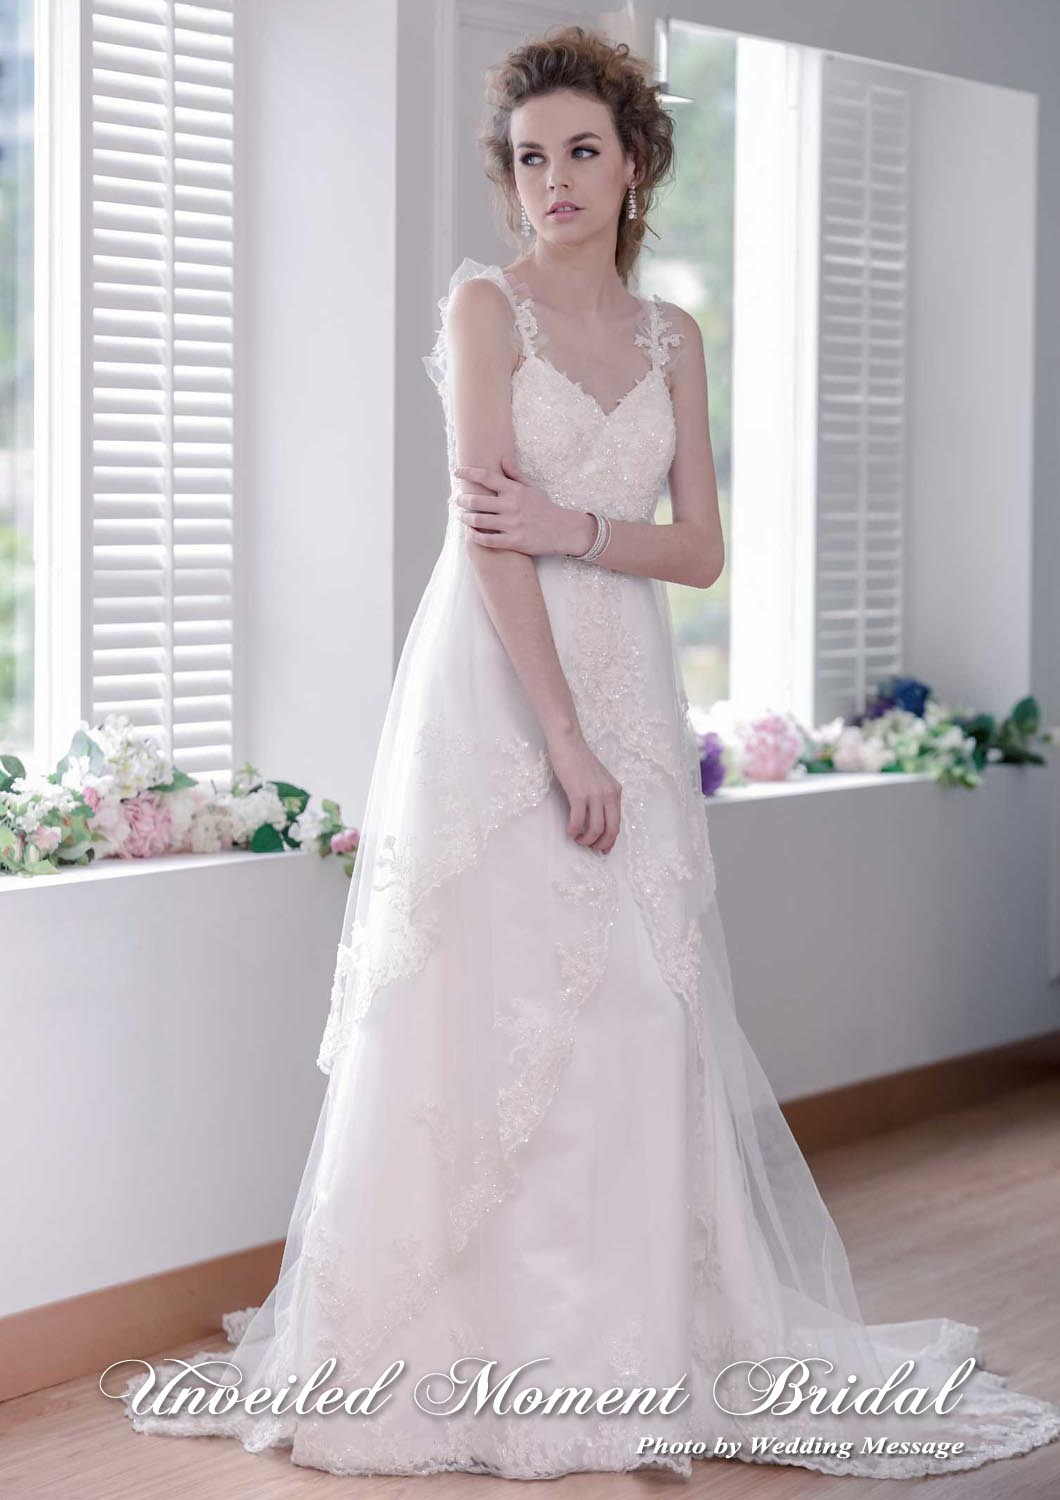 花邊吊帶, 高腰款, 蕾絲配飾小拖尾婚紗 Spaghetti straps, empire waistline wedding dress with an embellished lace court train overlay